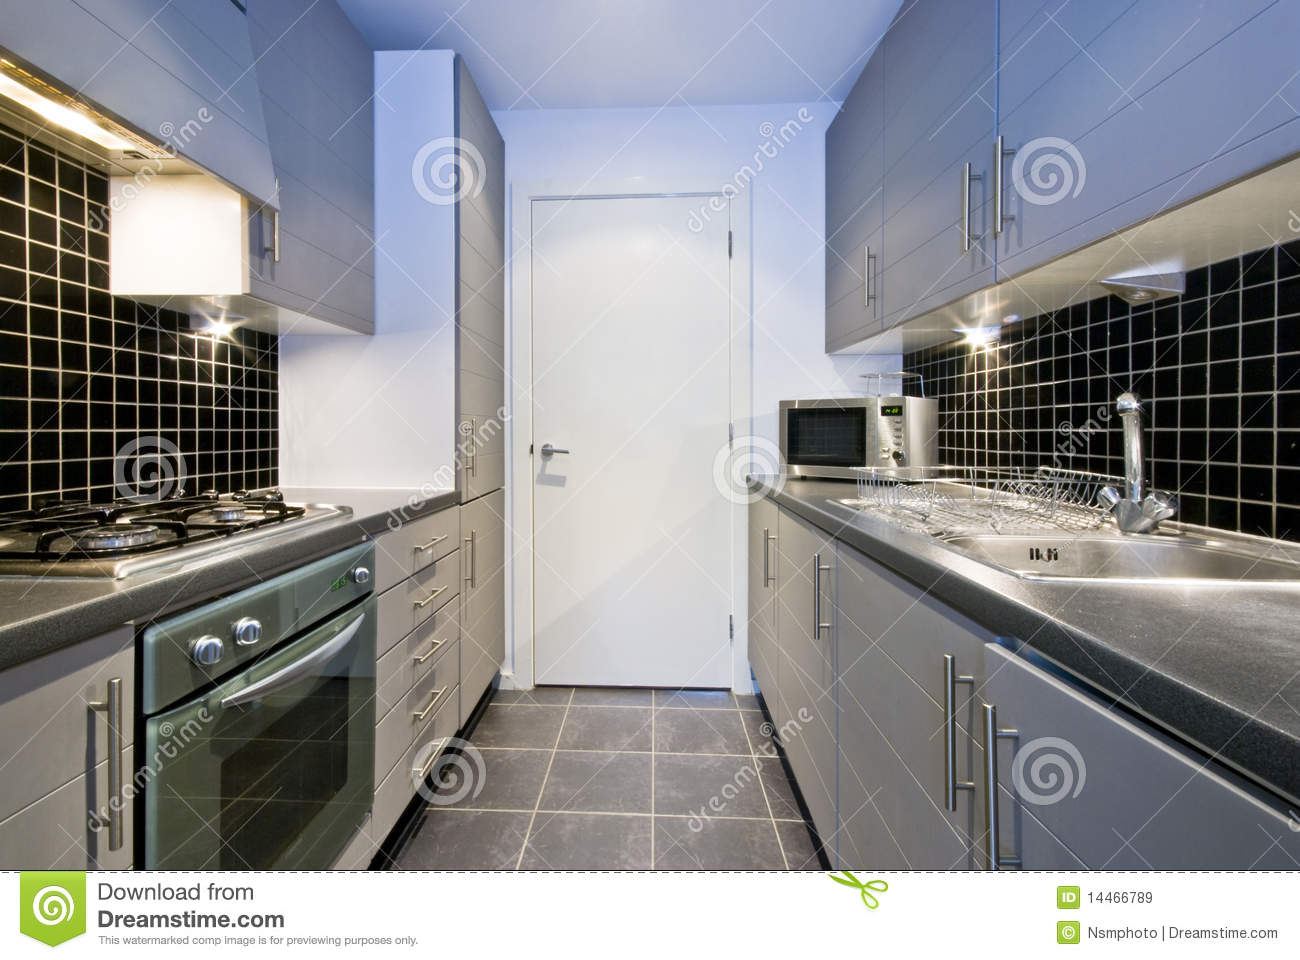 Modern Silver Kitchen With Black Tiles Stock Image  Image of flat home 14466789